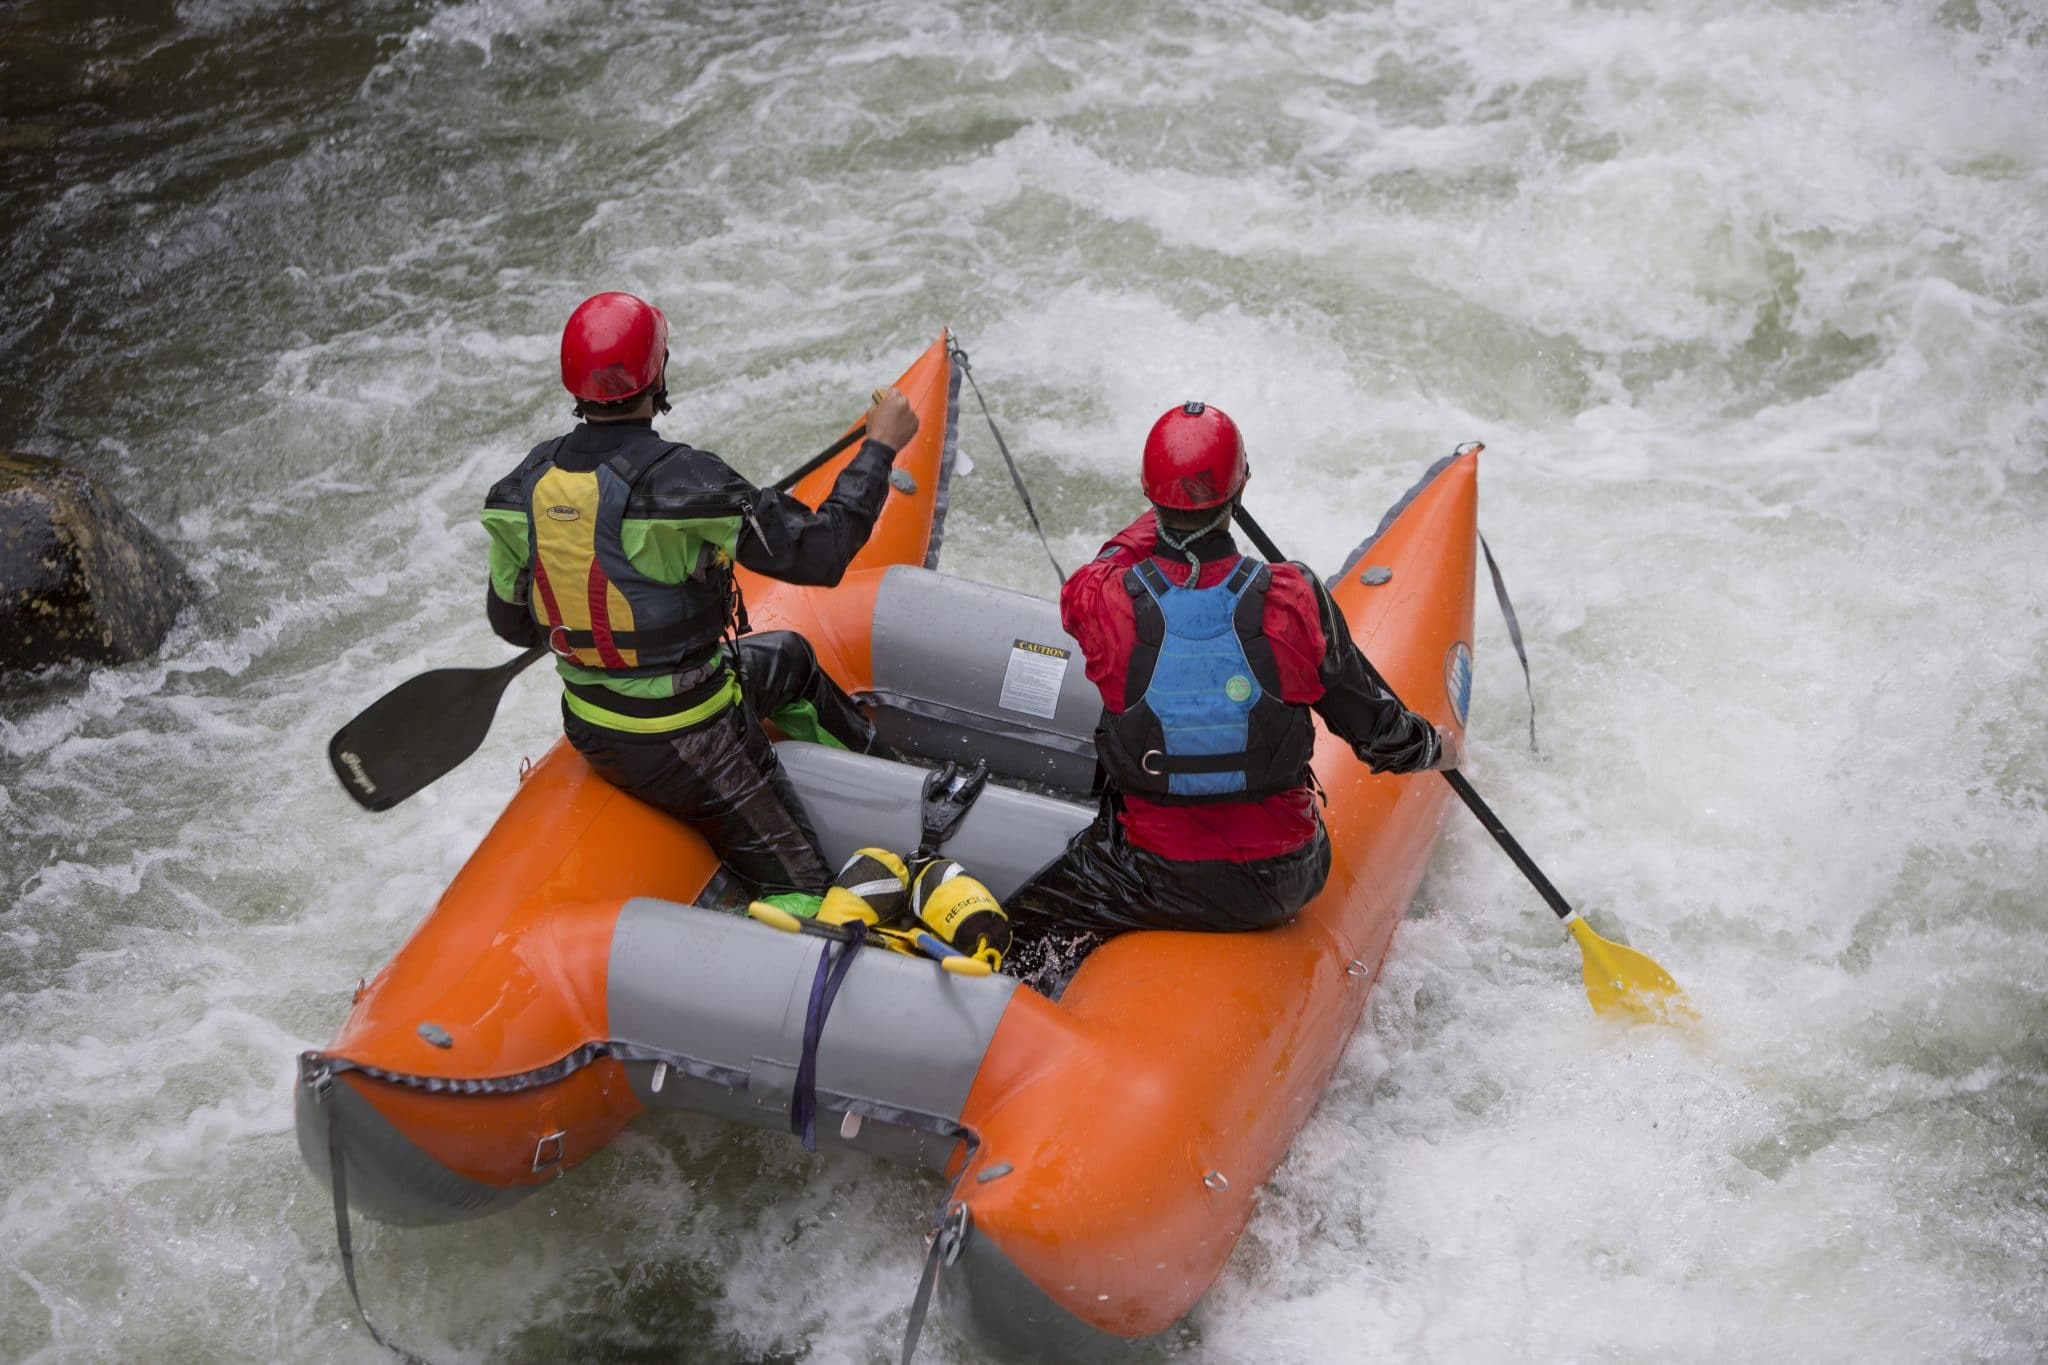 White water rafting on Fish Creek, Idaho